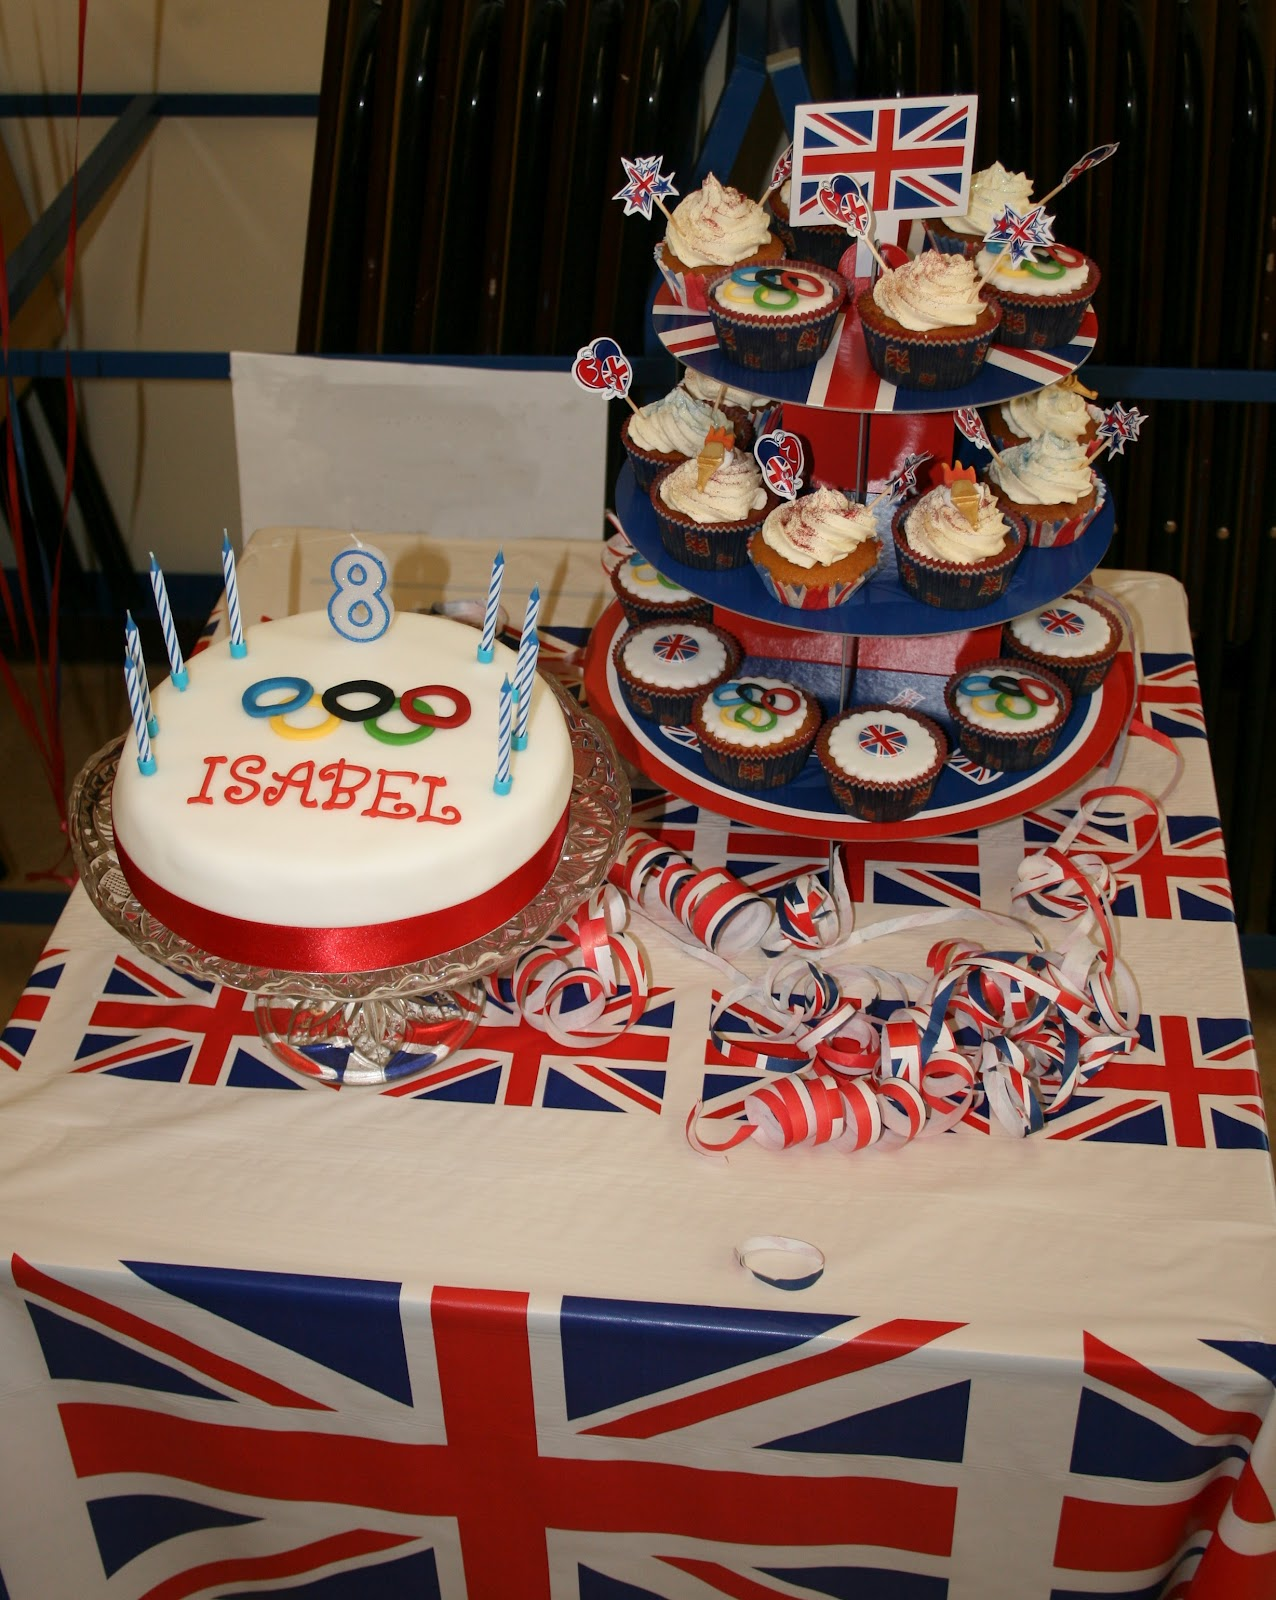 make olympic rings from sugarpaste using concentric circle cutters